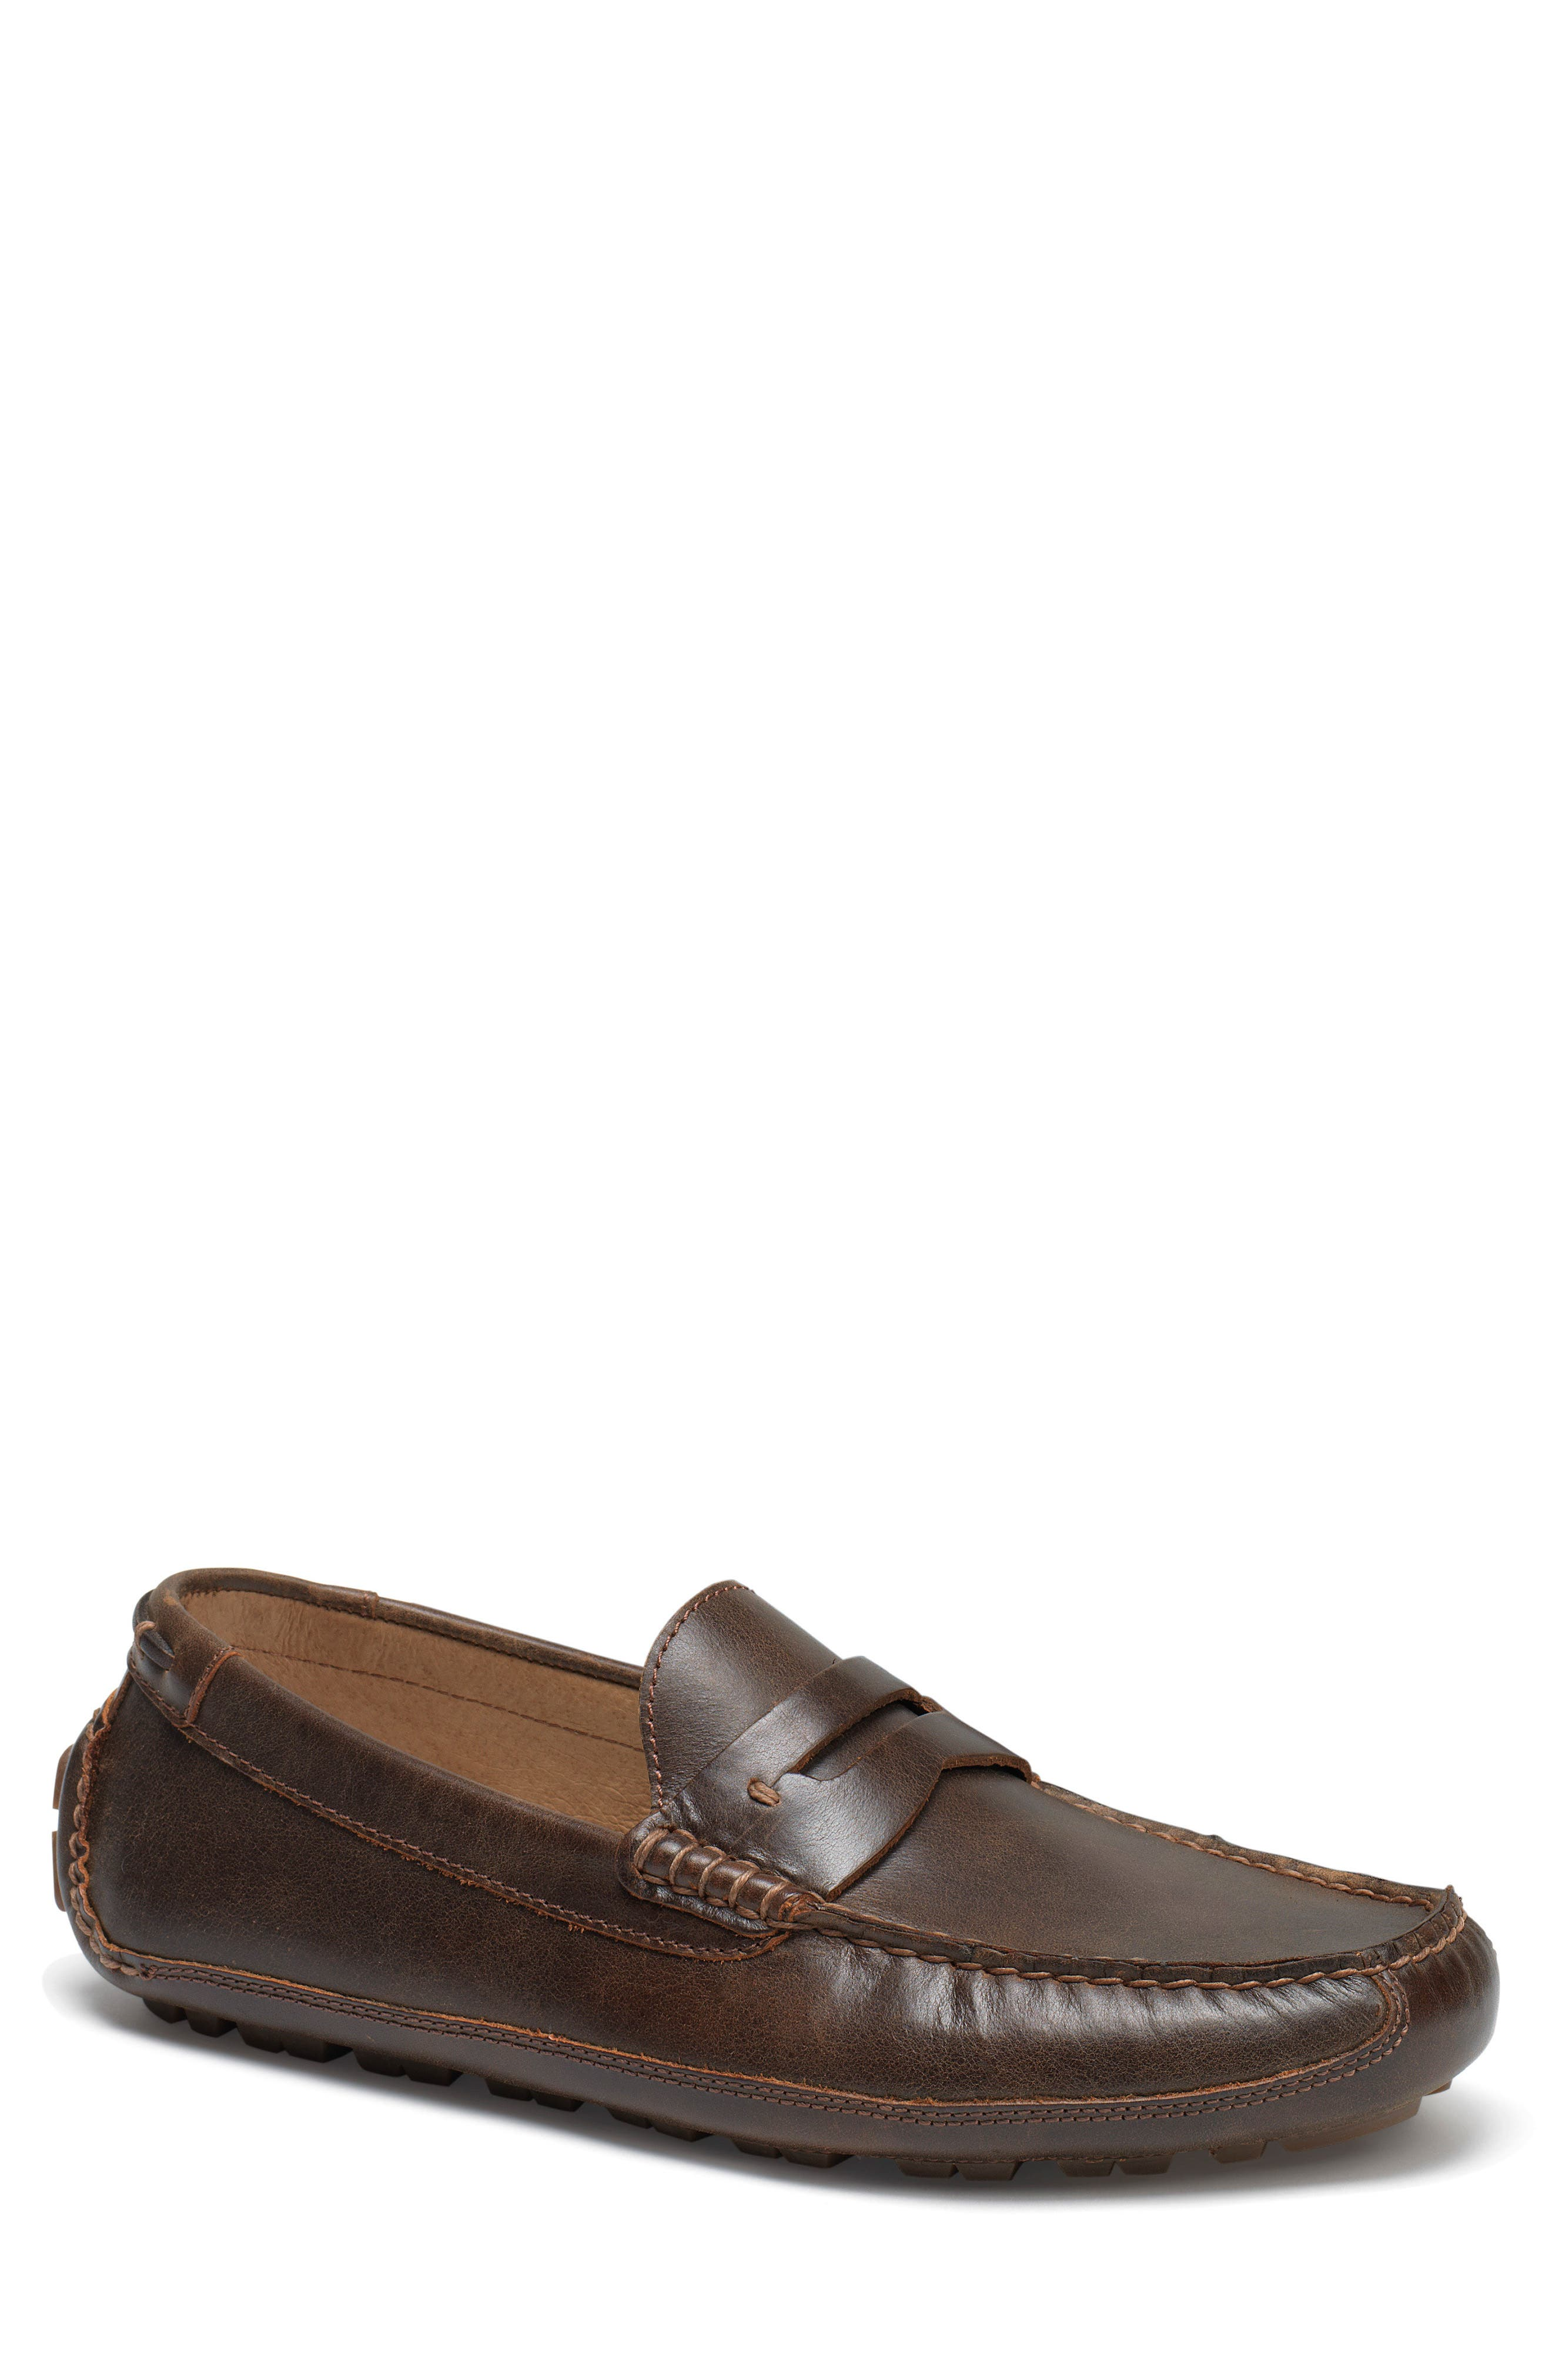 Dawson Water Resistant Driving Loafer,                             Main thumbnail 1, color,                             DARK BROWN LEATHER